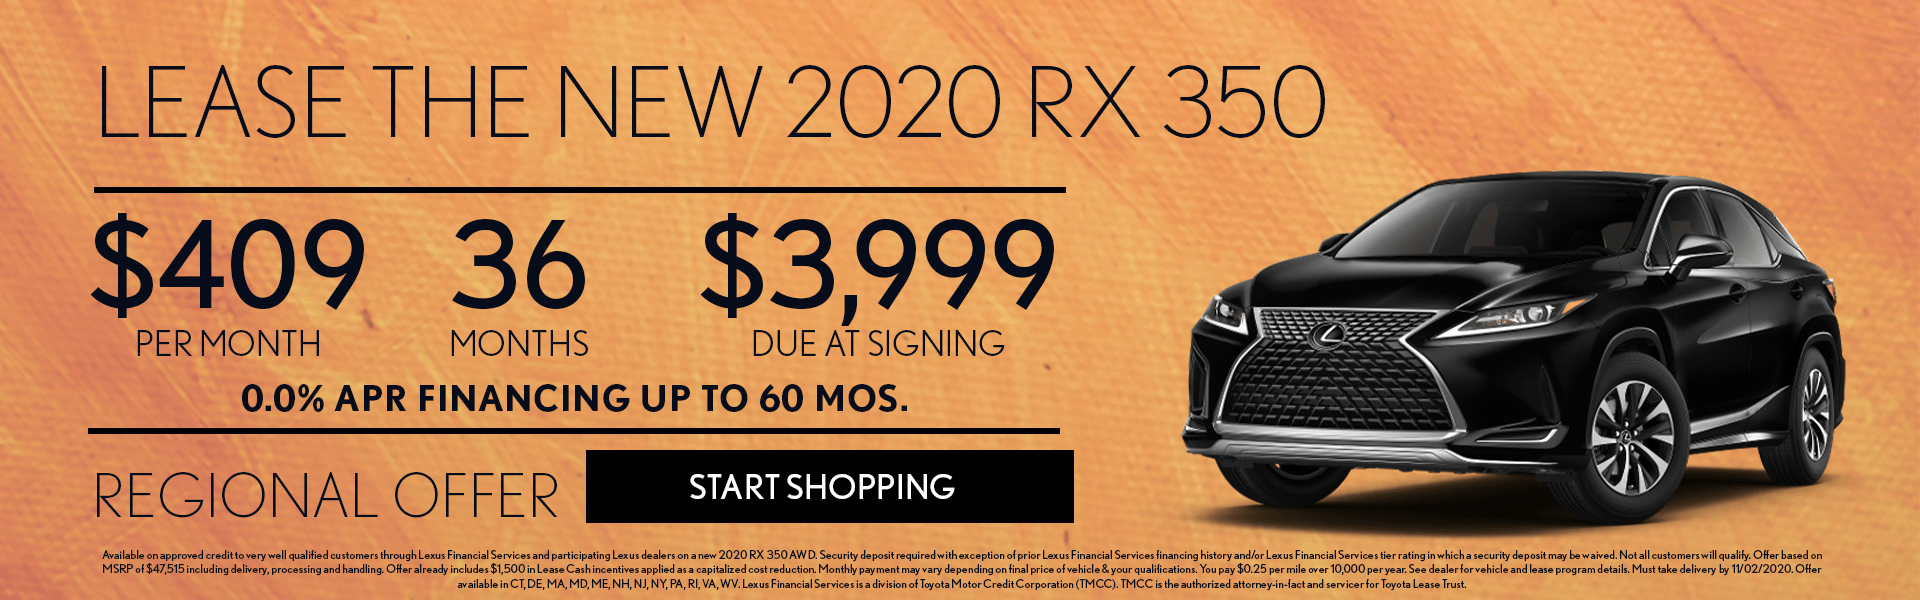 2020 Lexus RX 350 Lease Offer